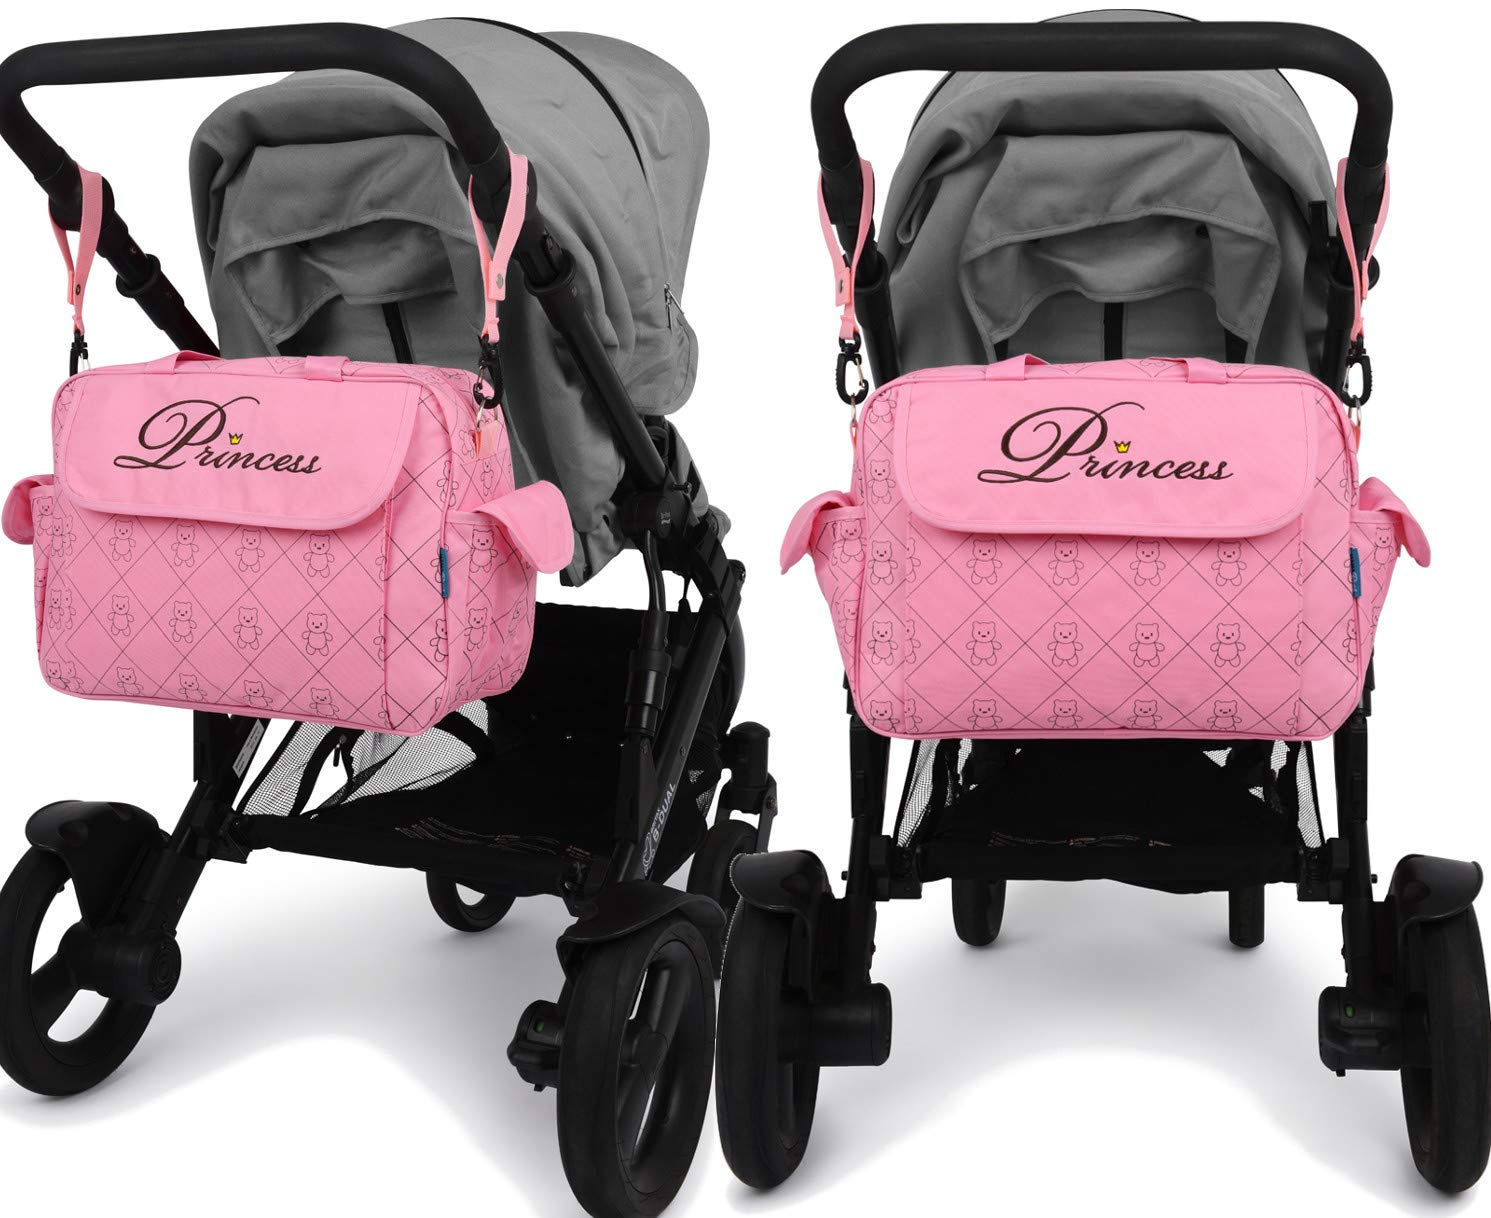 Water proof inside and out Baby shower Gift NEW 2018 Design 6 piece Nappy Diaper Baby Princess Prince Changing Hospital Bag with Insulated pocket padded changing mat buggy clips